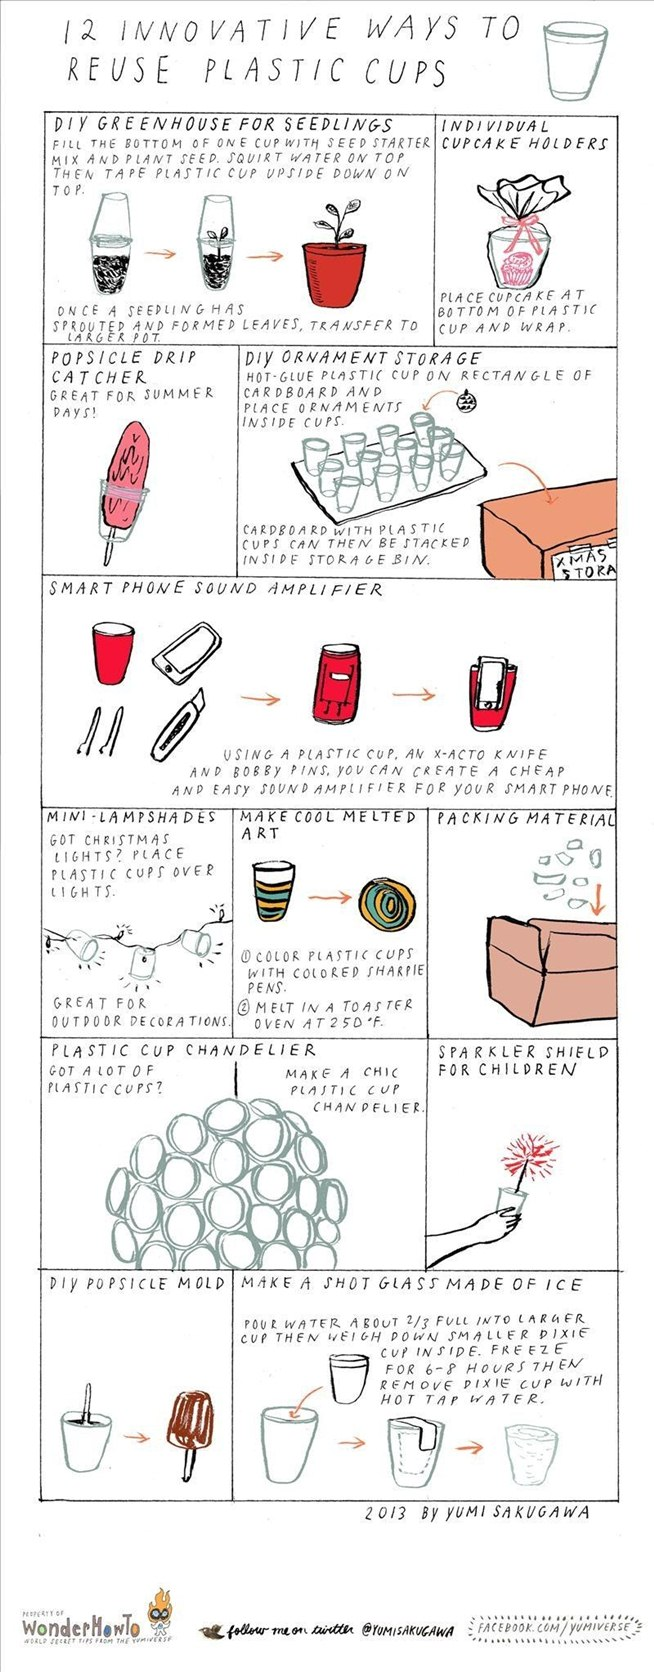 12 Innovative Ways to Reuse Plastic Cups « The Secret Yumiverse